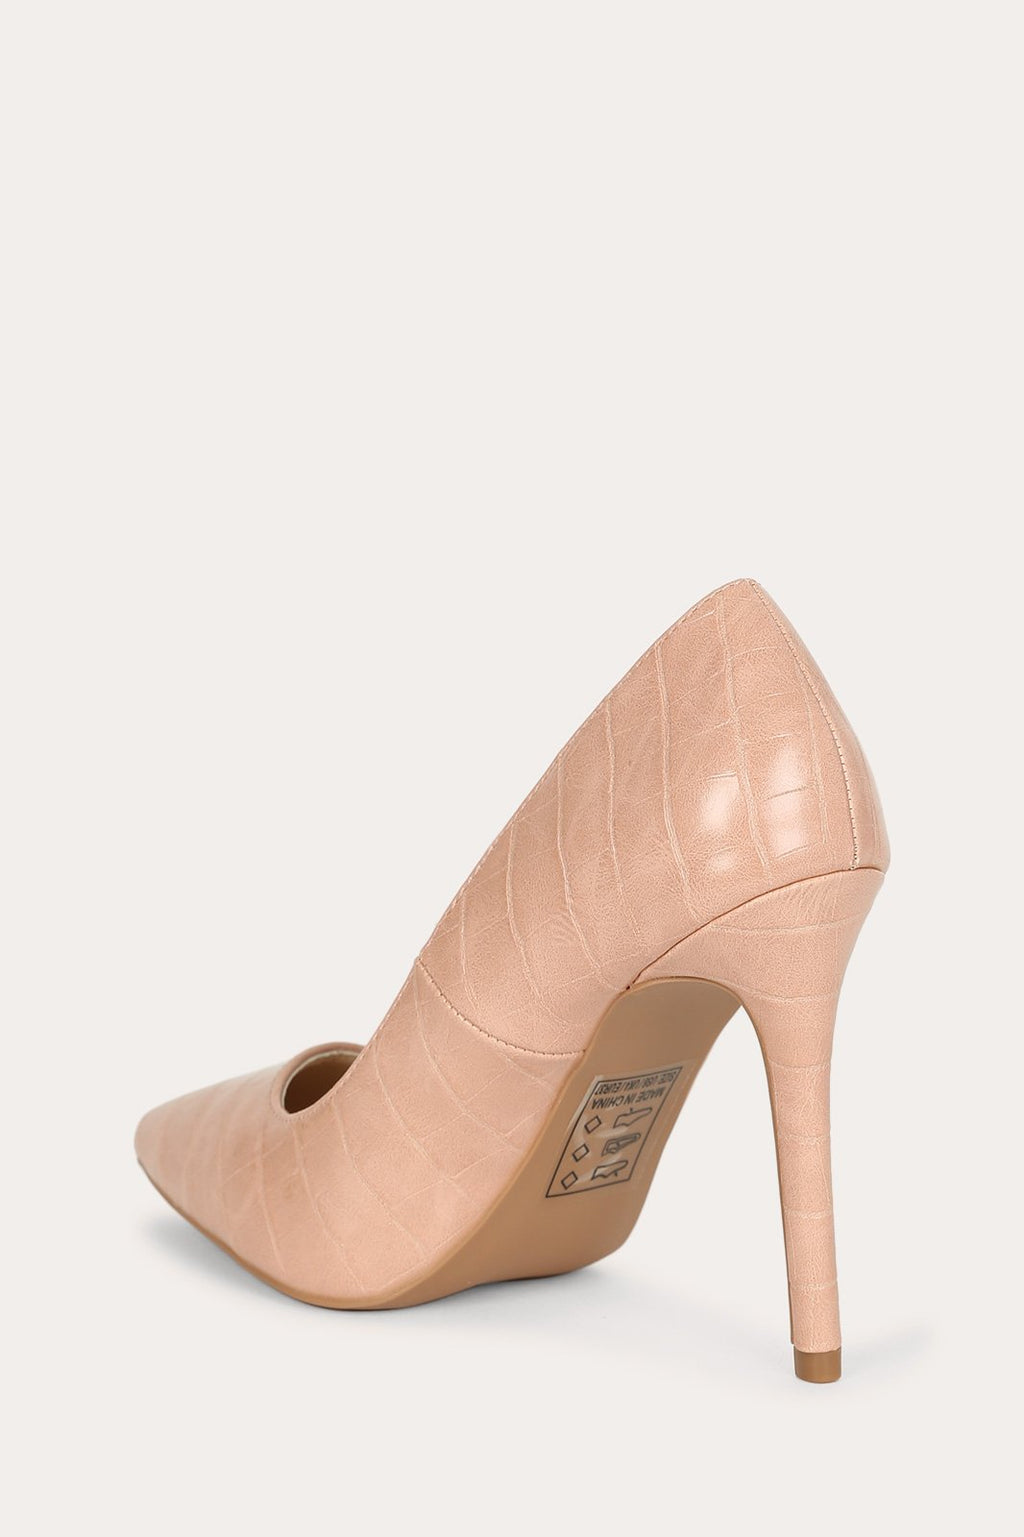 Jade - Nude Croco Pumps